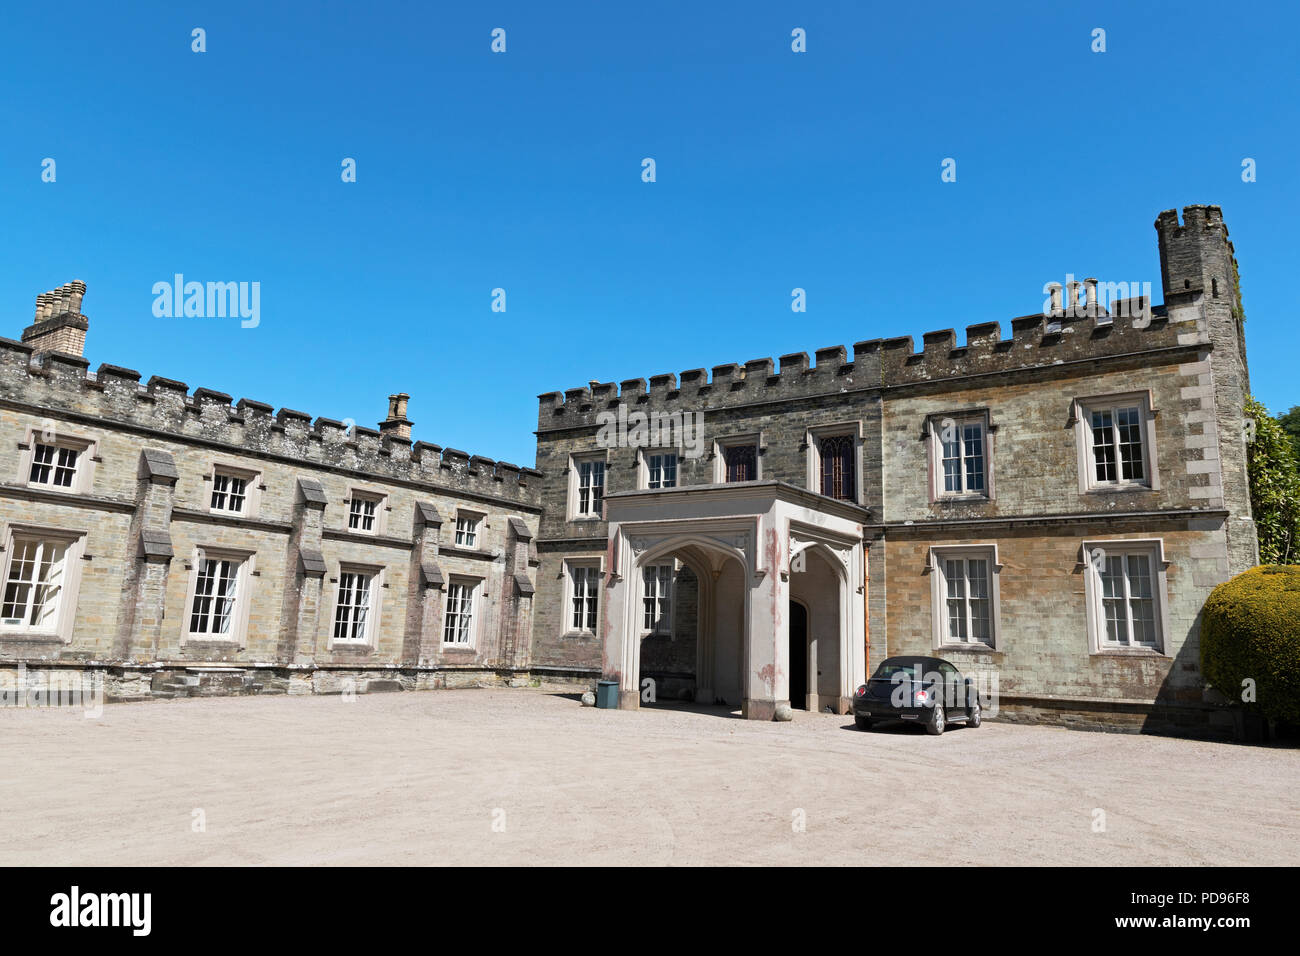 port eliot house in st.germans, cornwall, england, britain, uk, is the oldest most continually, lived in house in england. grade 1 listed it dates bac - Stock Image